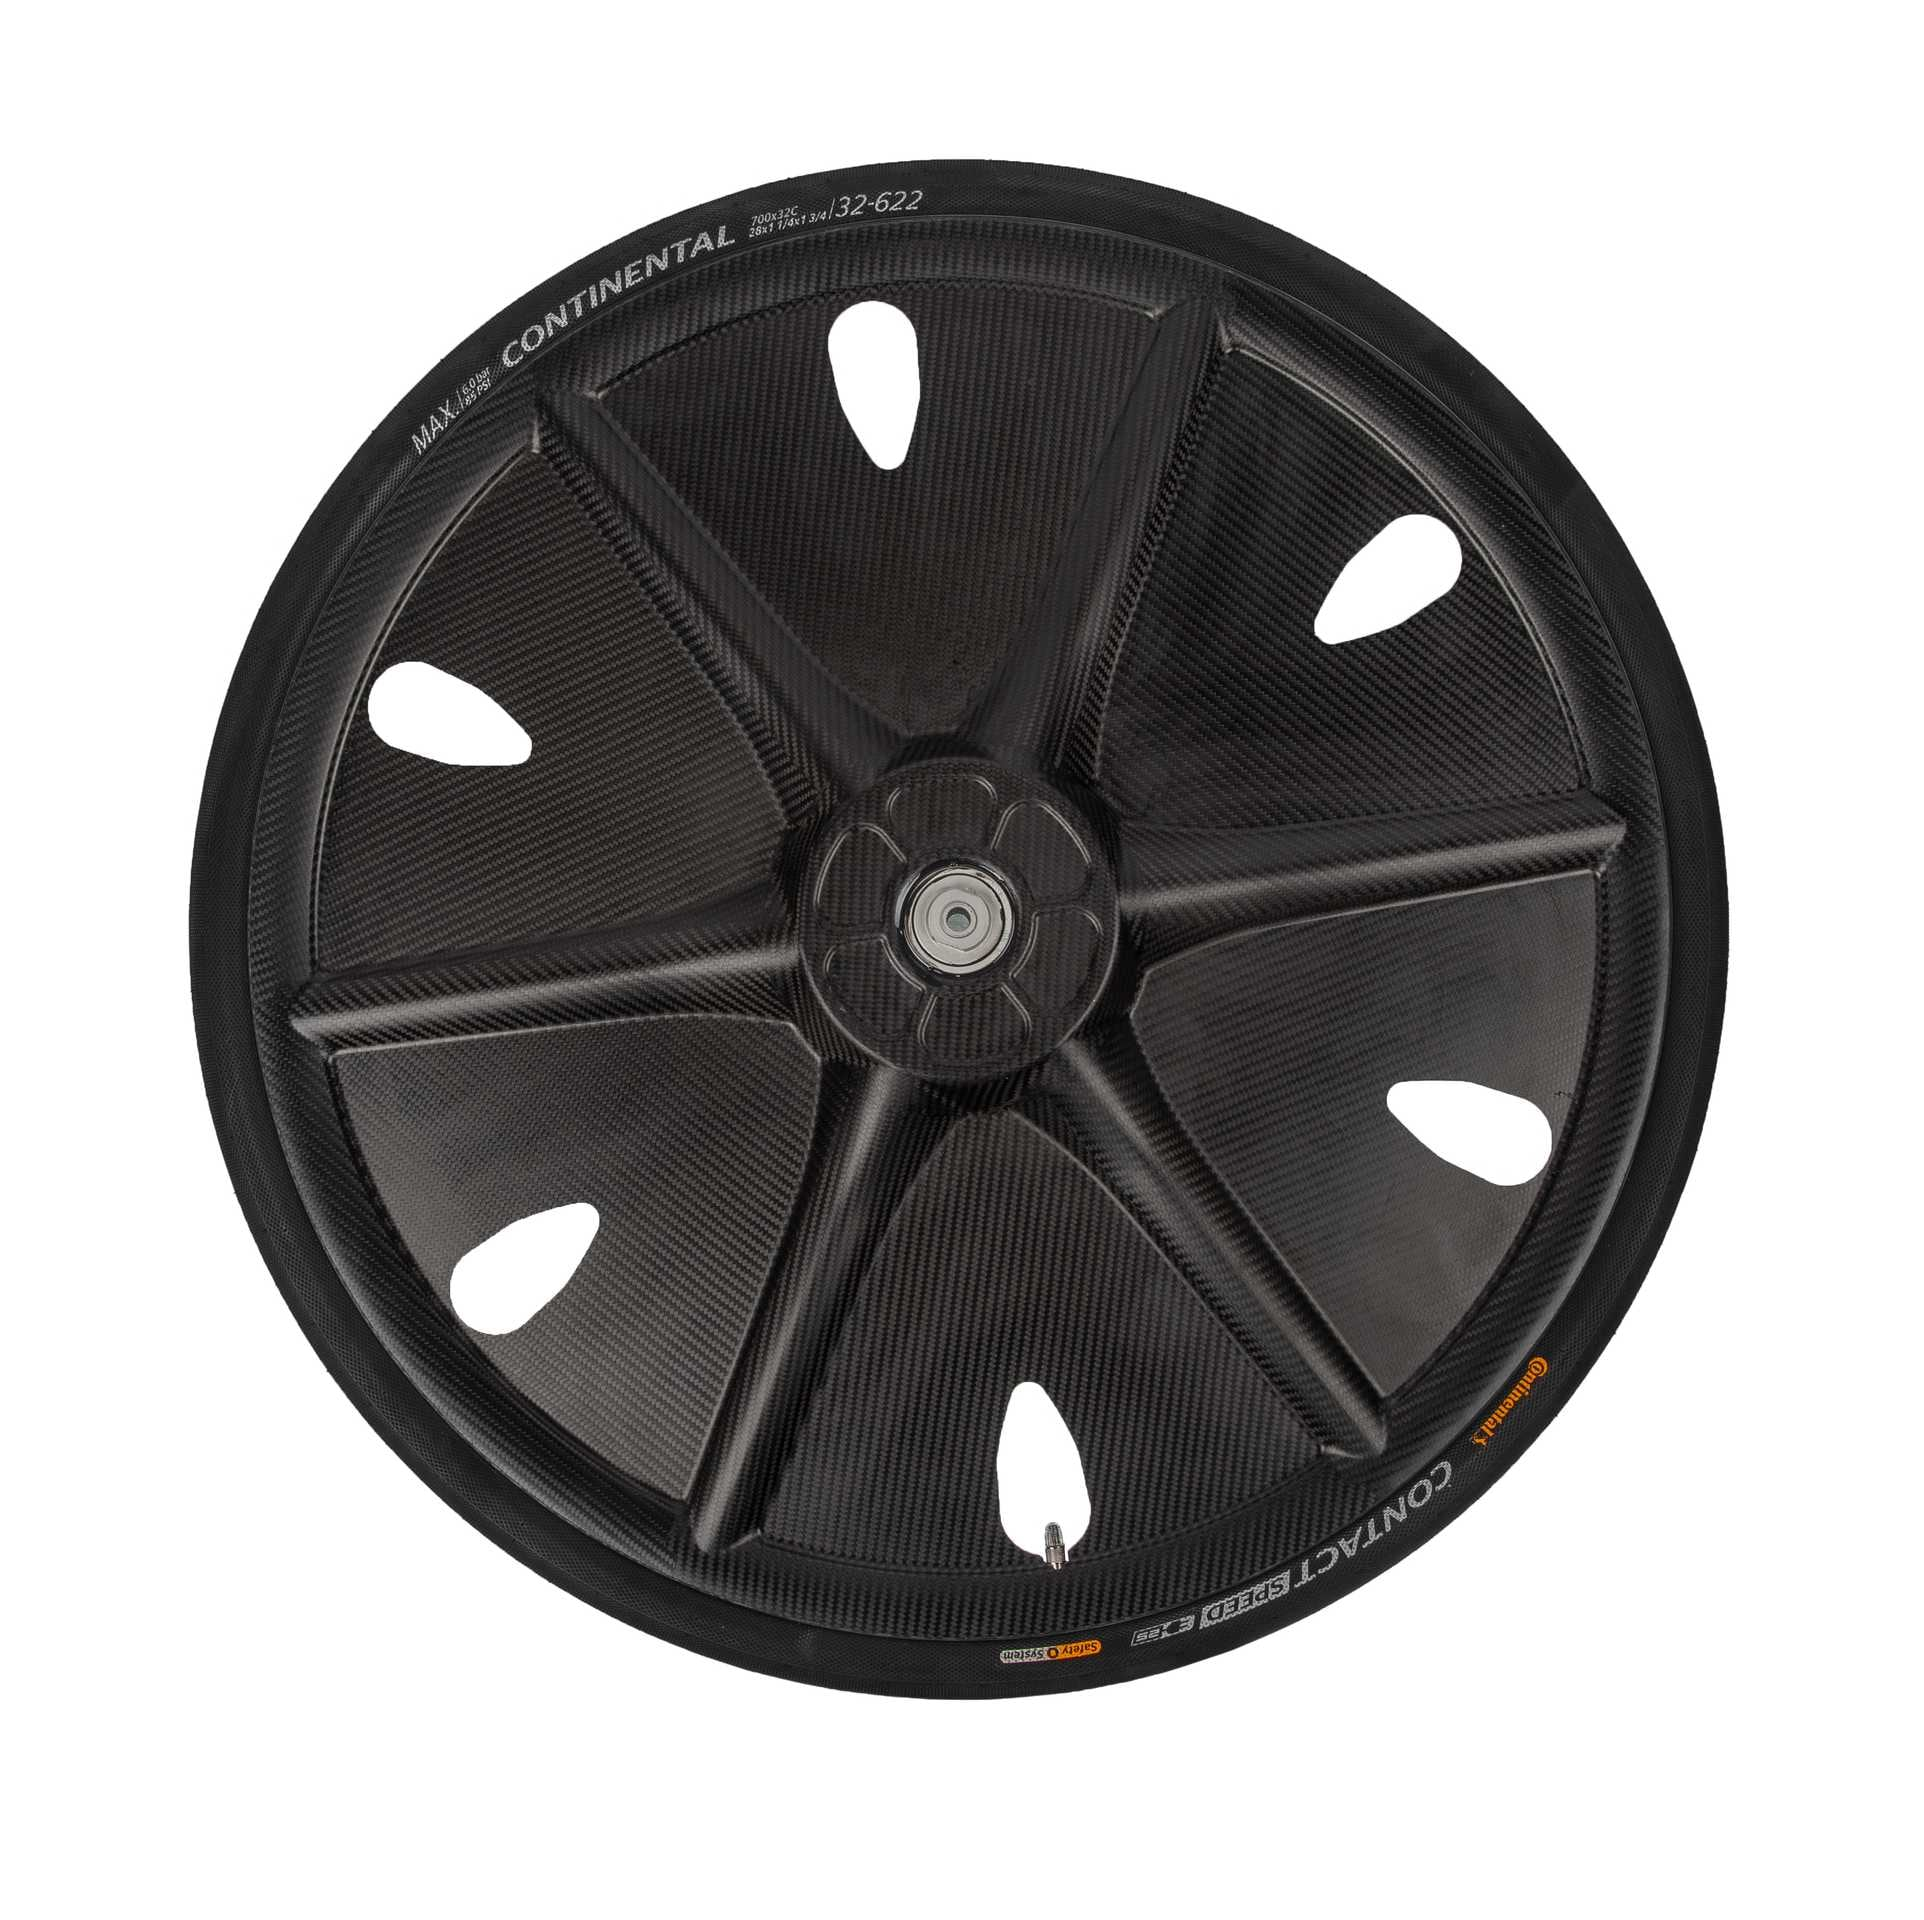 Finntack Crafit Carbon Fiber Wheel for Sulkies (67mm Axel), (Sold in pcs)